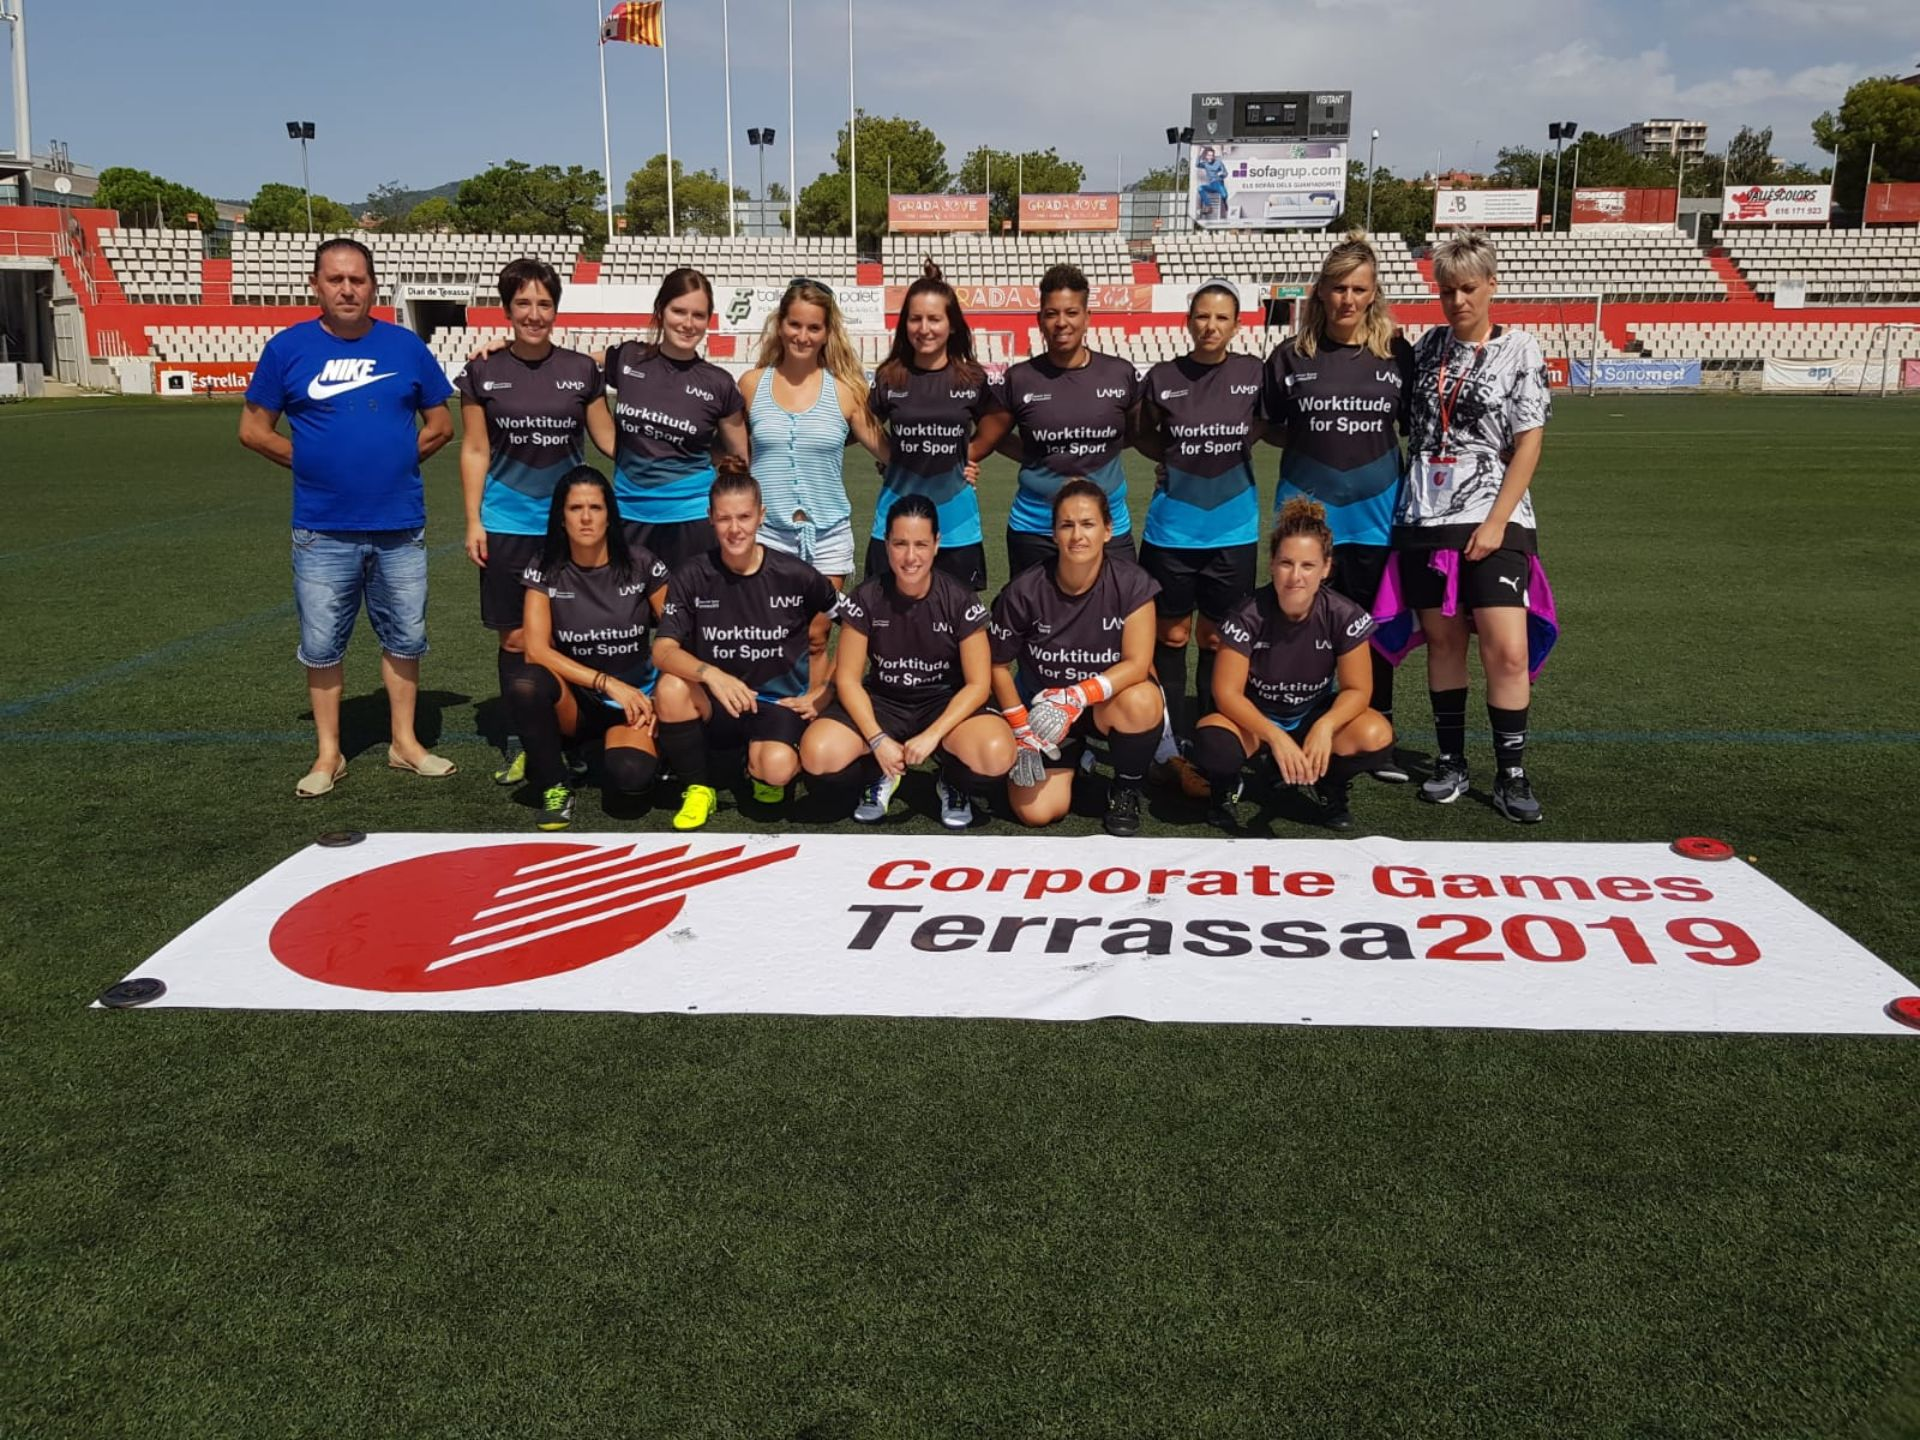 CORPORATE GAMES TERRASSA IMG-20190915-WA0043